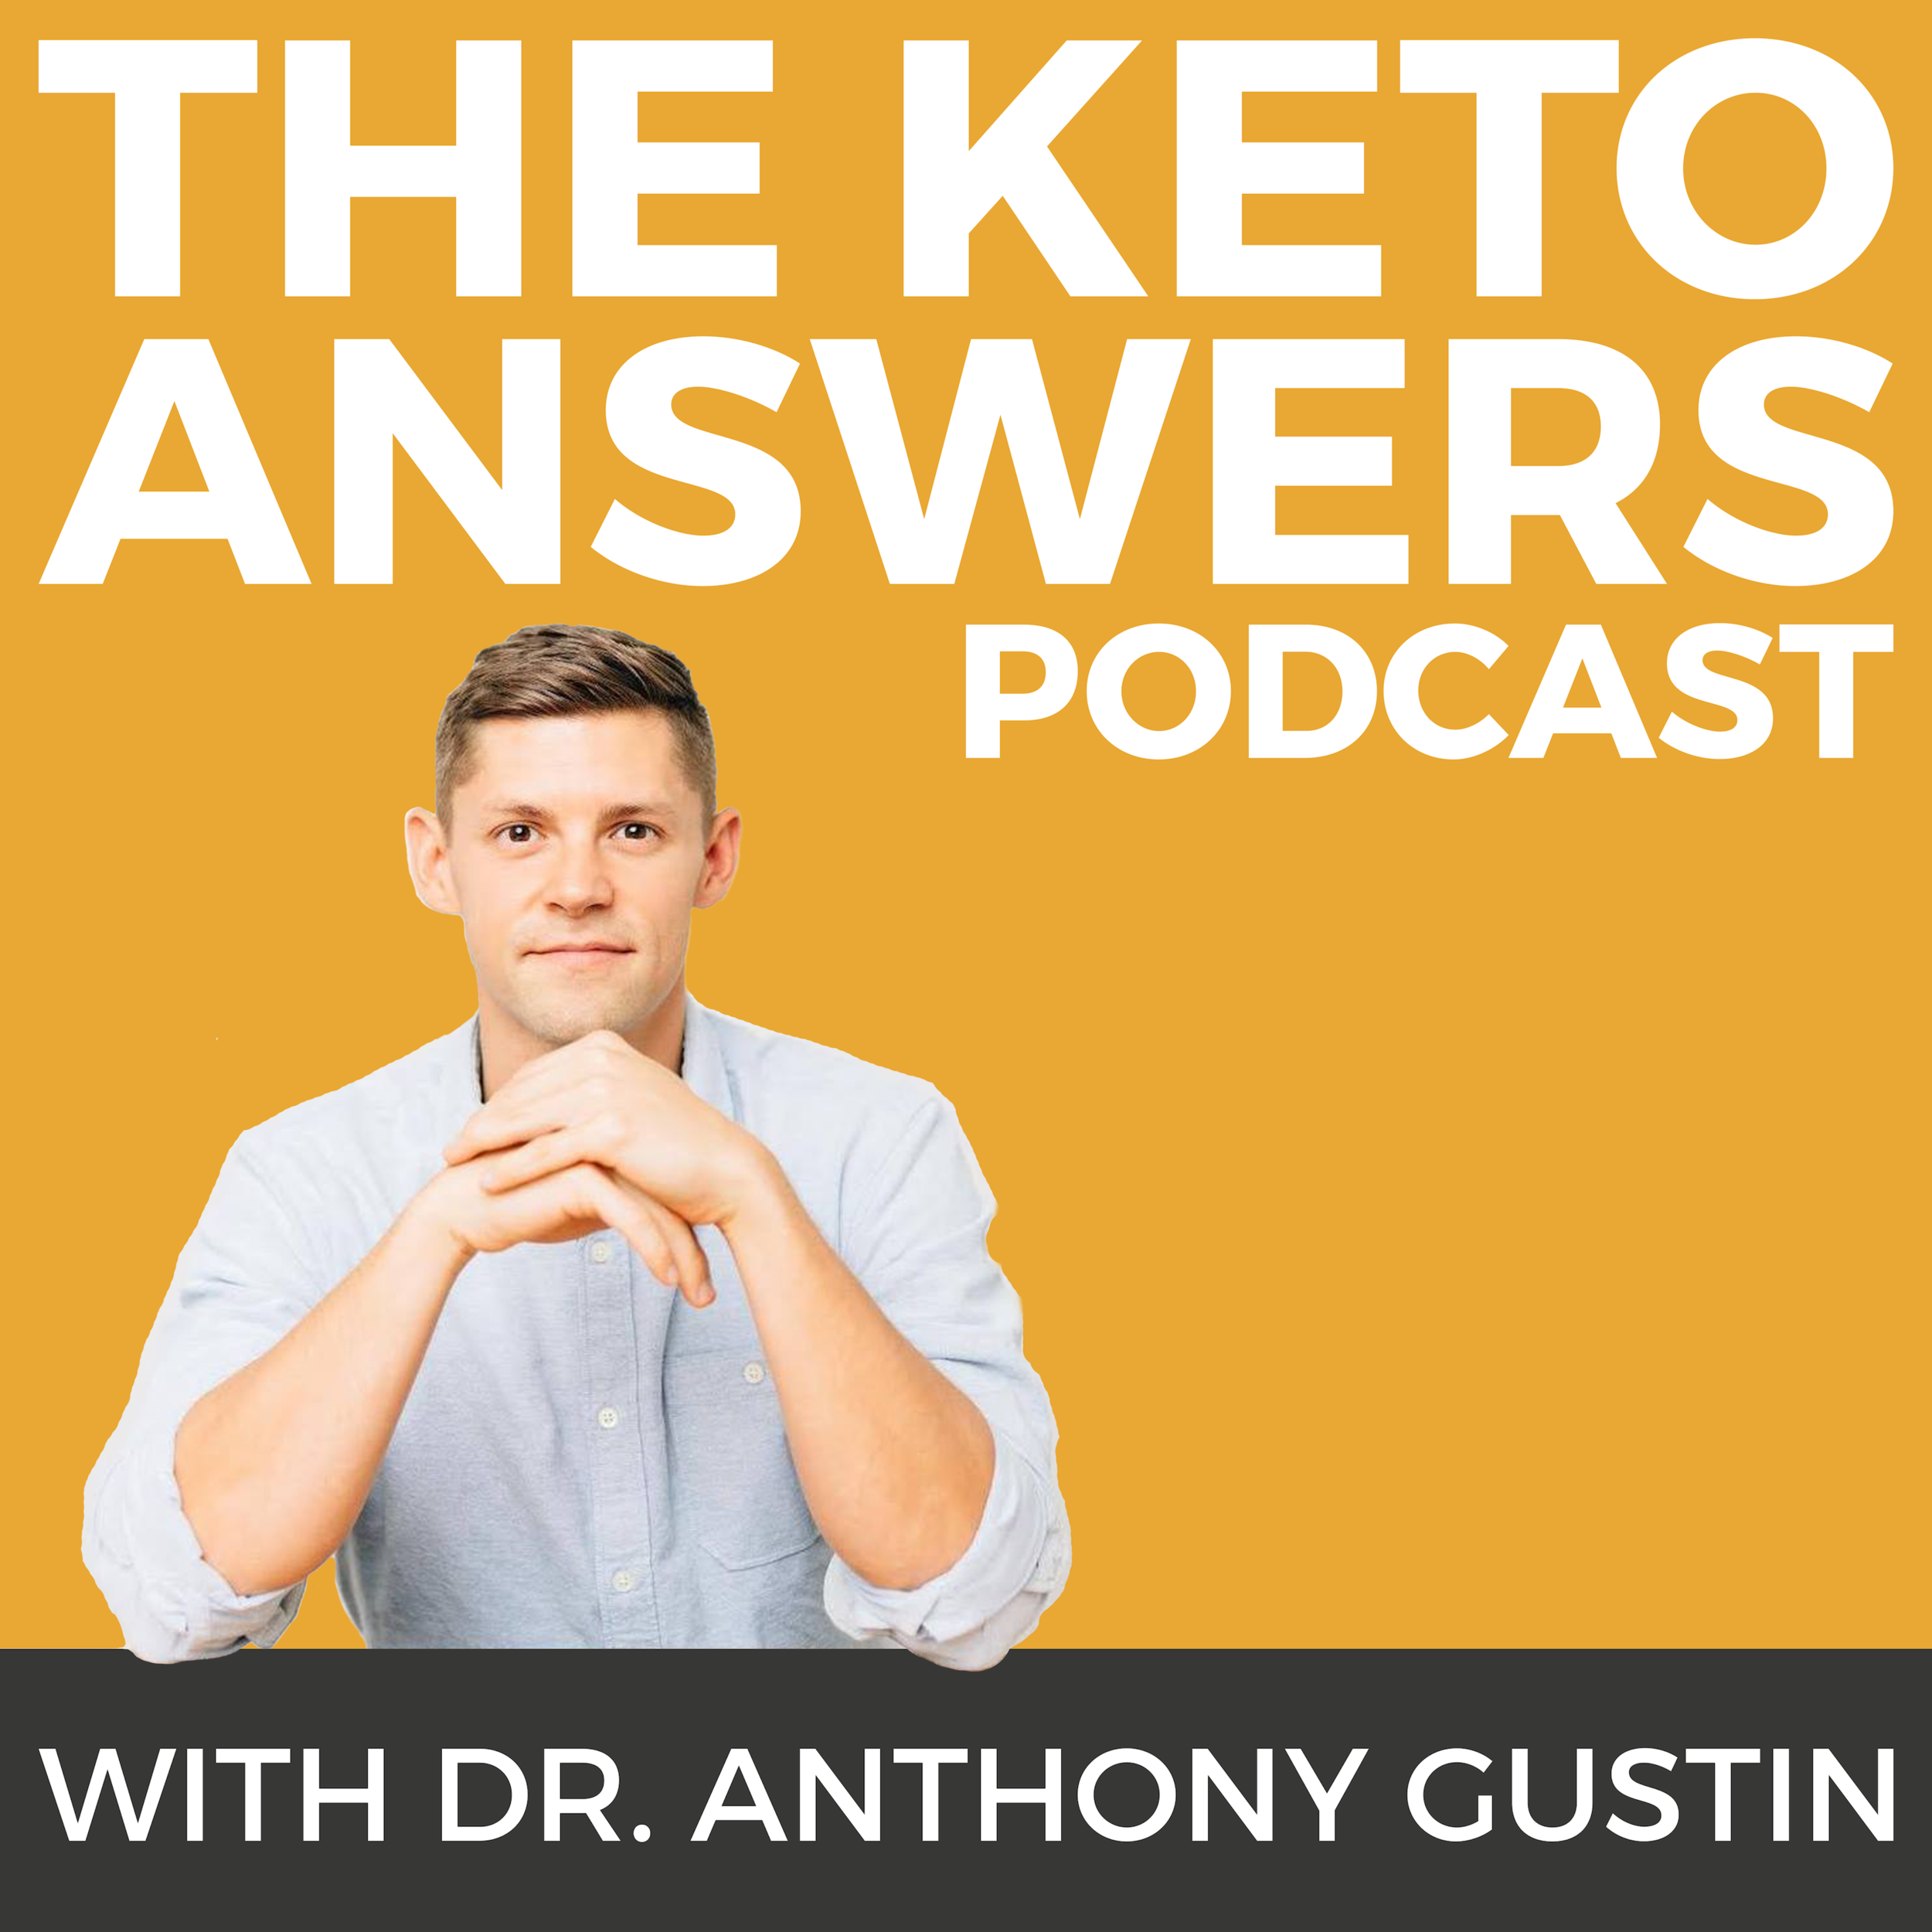 - Episode 005: with Ryan Munsey- The Carnivore Diet and What Happens When You Cut Out PlansEpisode 019: with Dr. Shawn Baker- Busting Myths About The Carnivore Diet and How to Thrive On MeatEpisode 028: with Dr. Anthony Gustin- My Carnivore Diet Results and Q&A